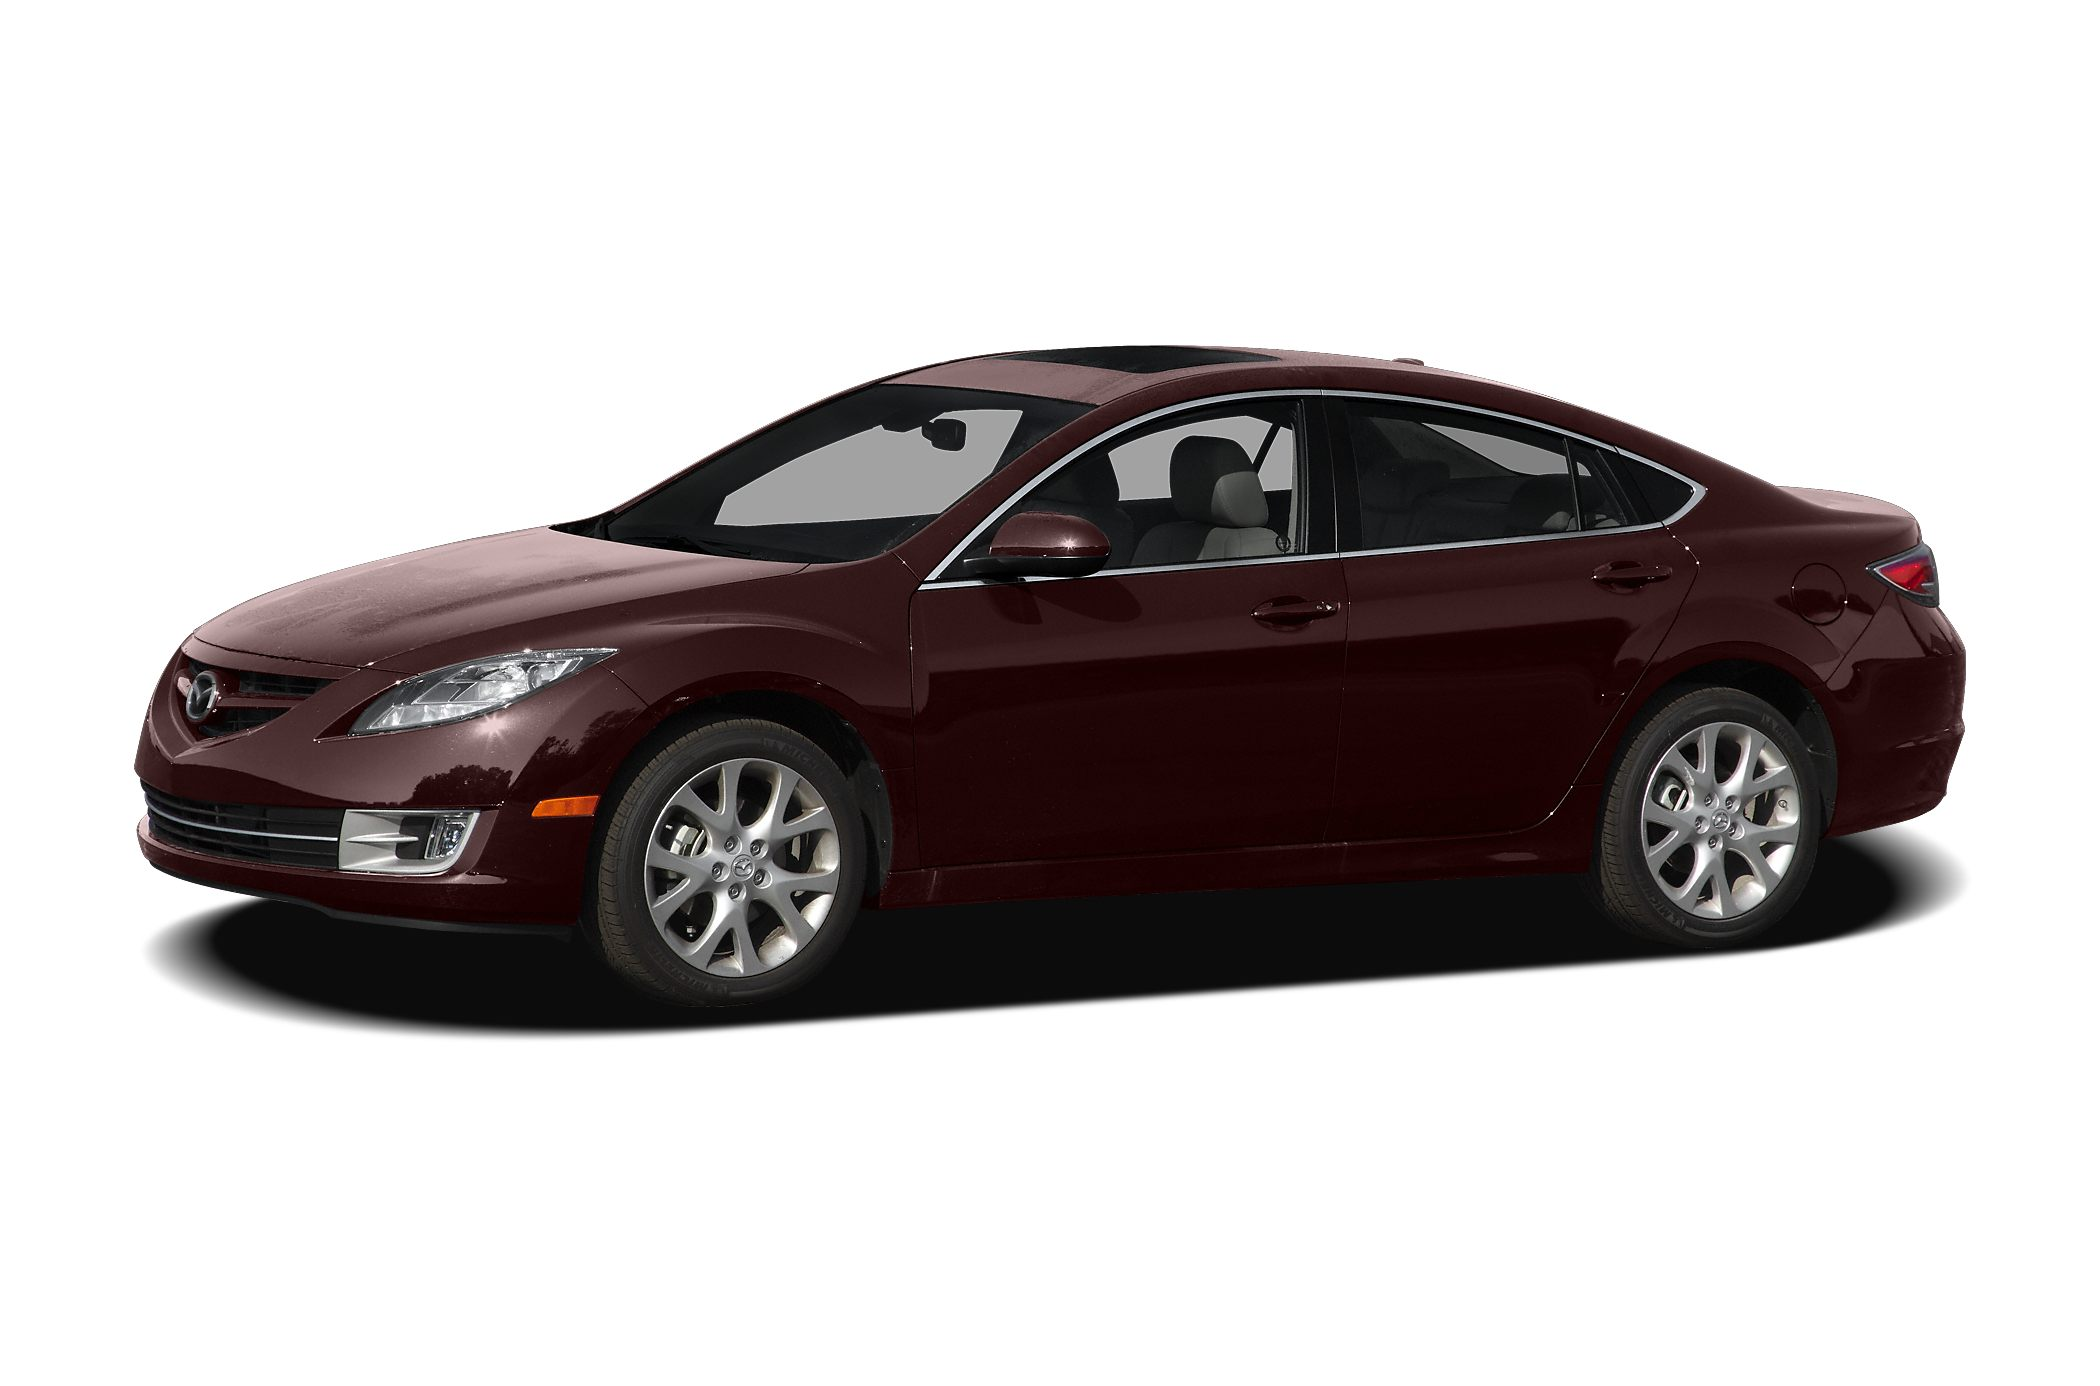 2010 Mazda Mazda6 I Touring Sedan for sale in Garland for $0 with 109,689 miles